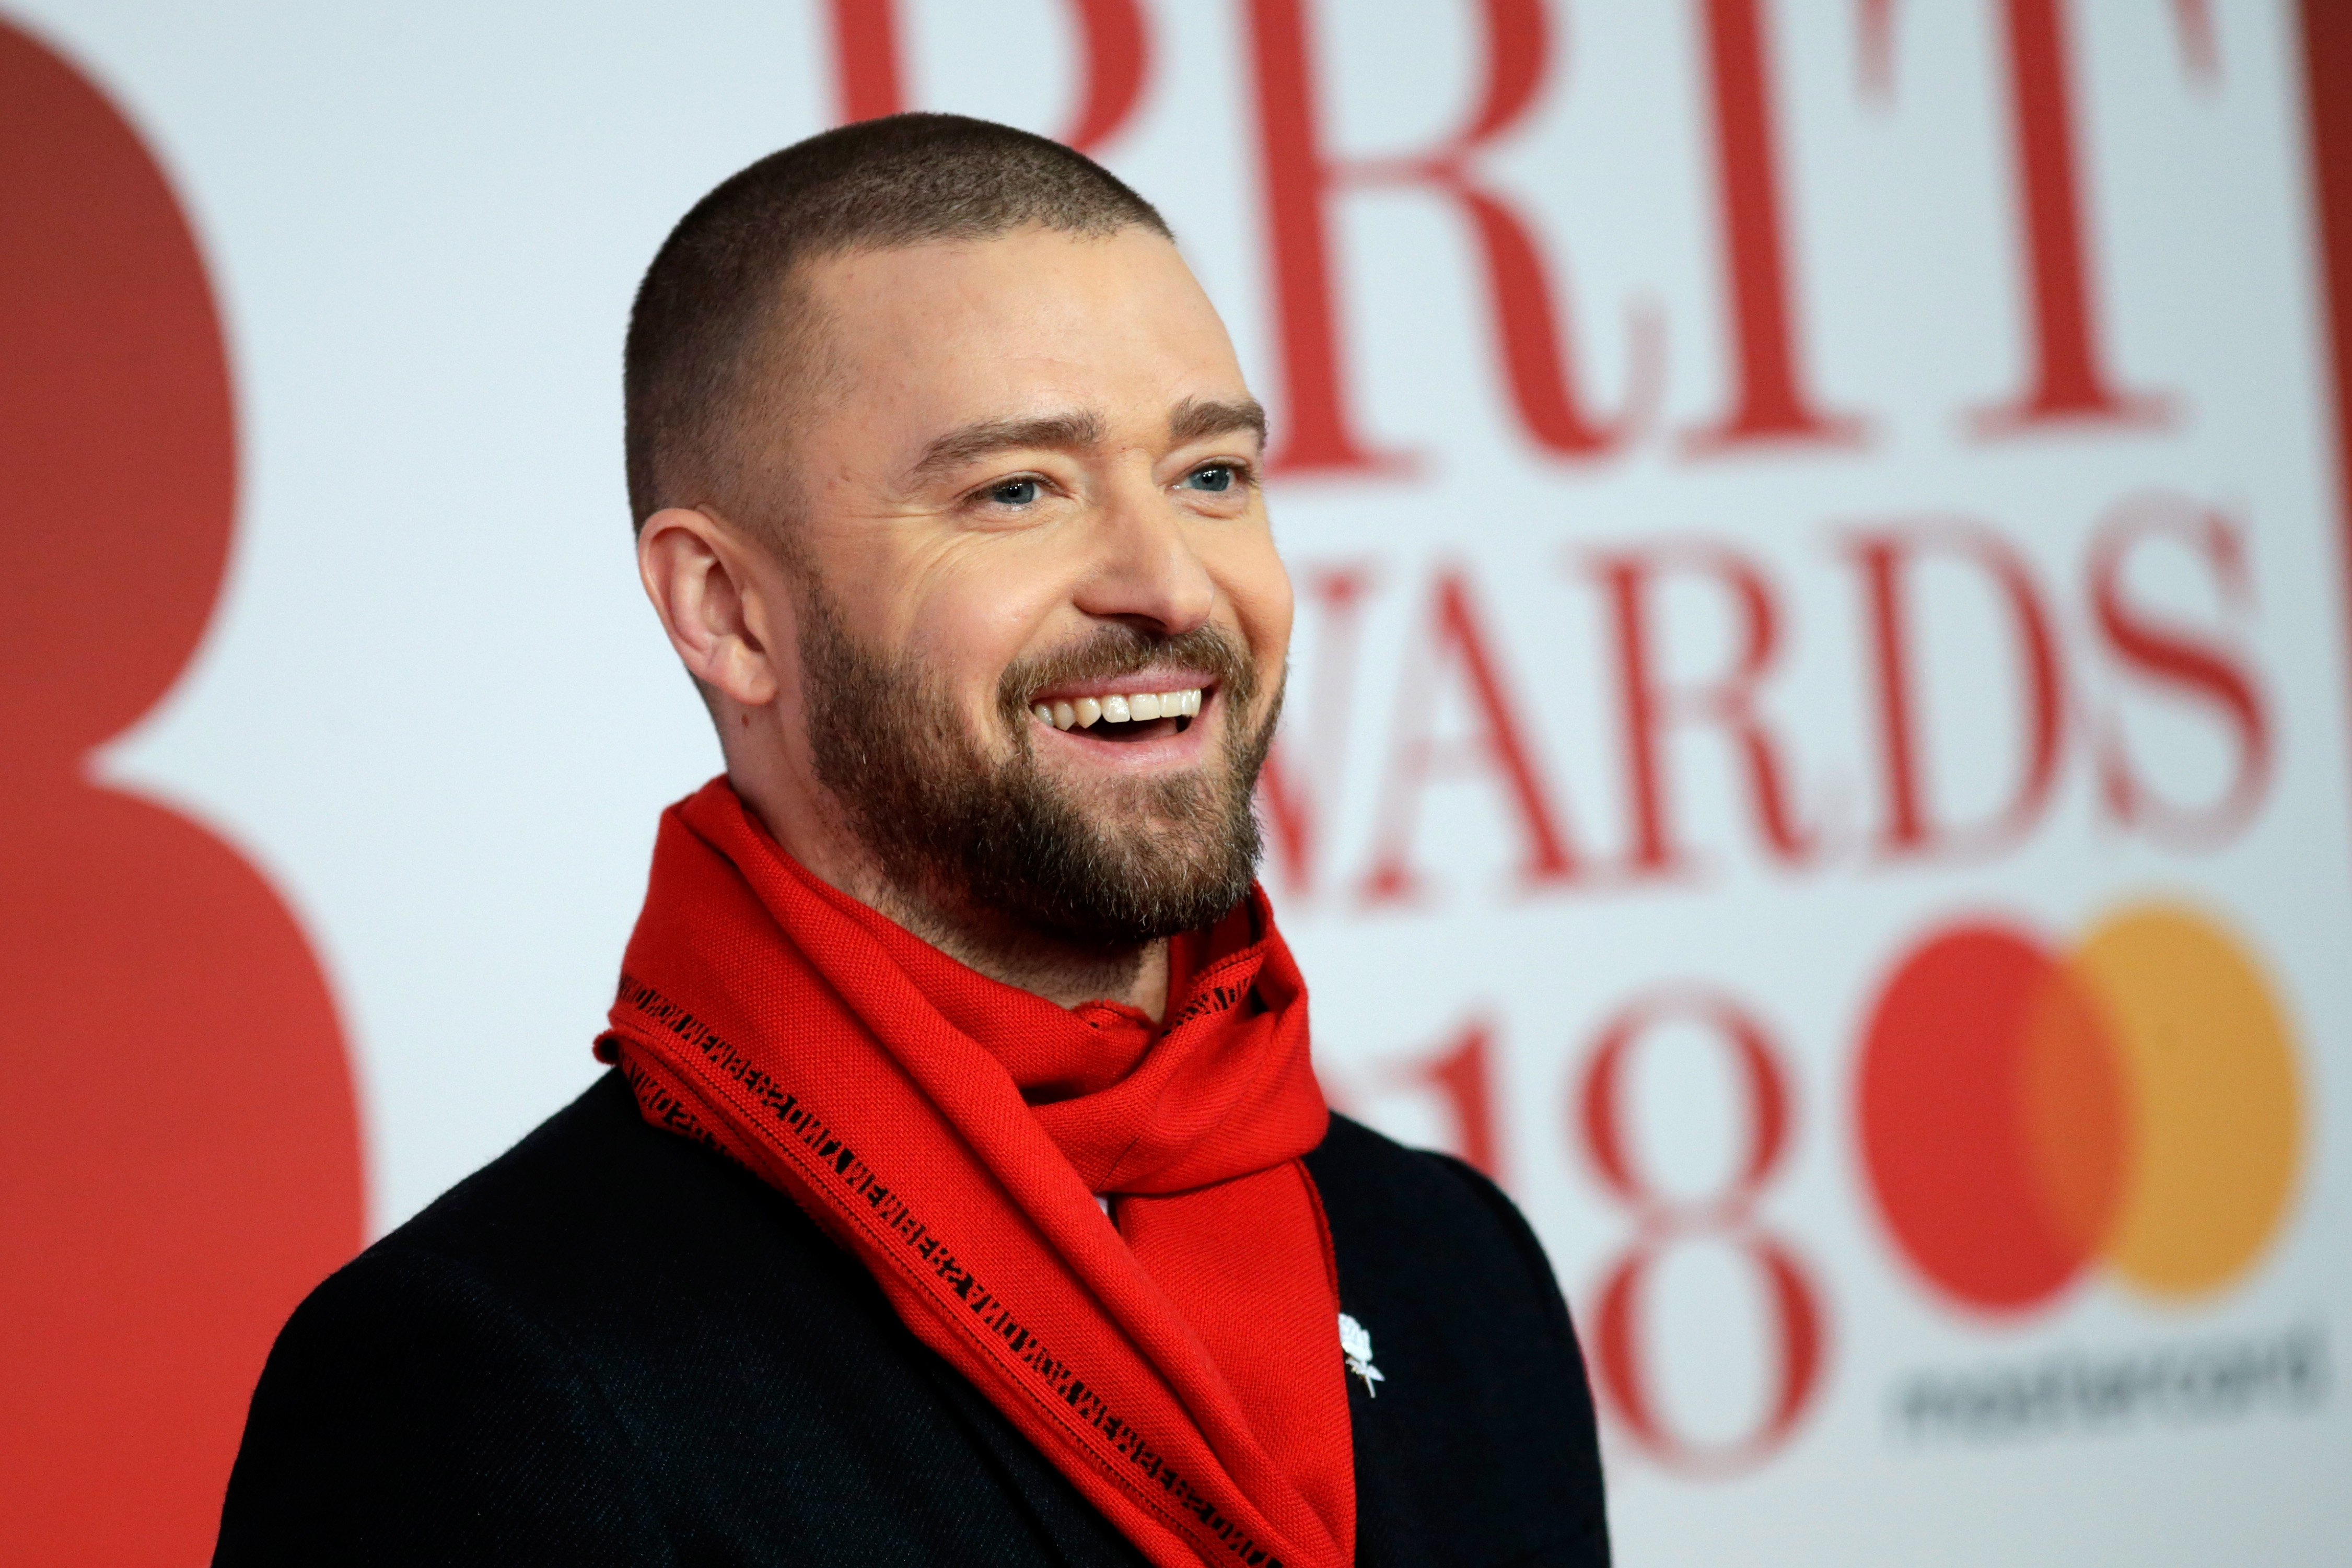 Justin Timberlake attends The BRIT Awards 2018 held at The O2 Arena in London, England on Feb. 21, 2018.